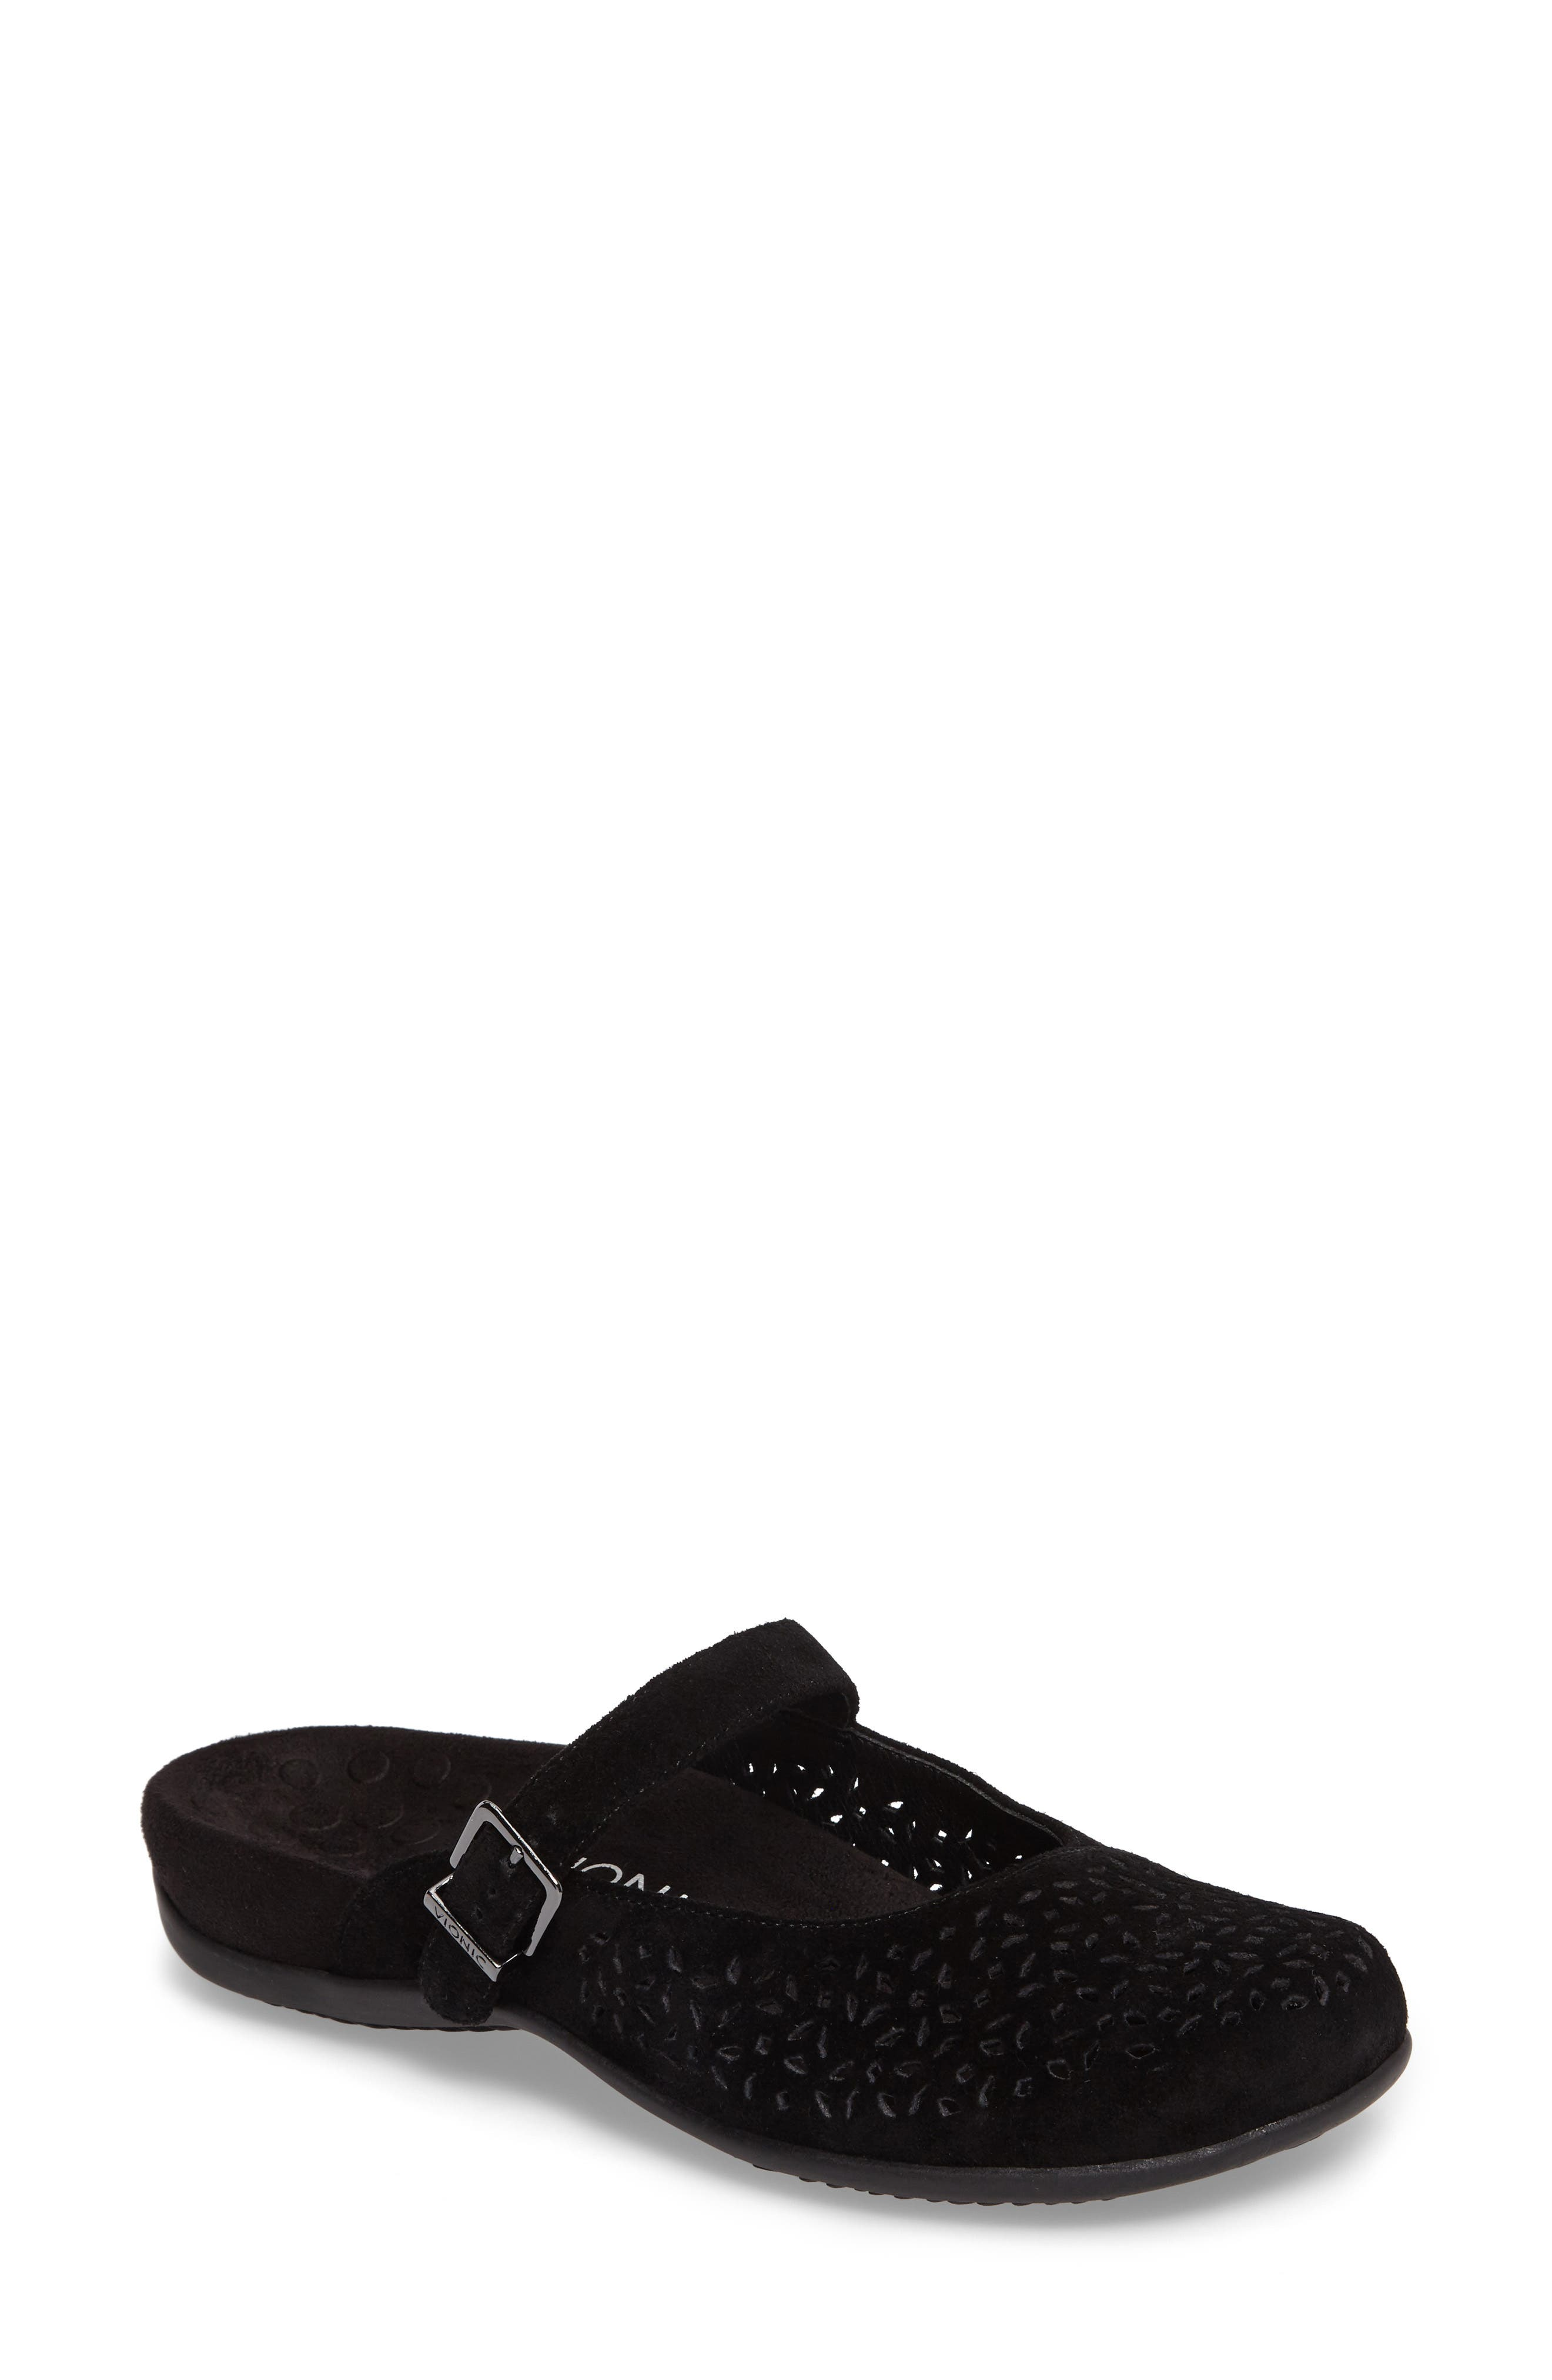 Rest Lidia Perforated Mary Jane Mule,                         Main,                         color, BLACK SUEDE